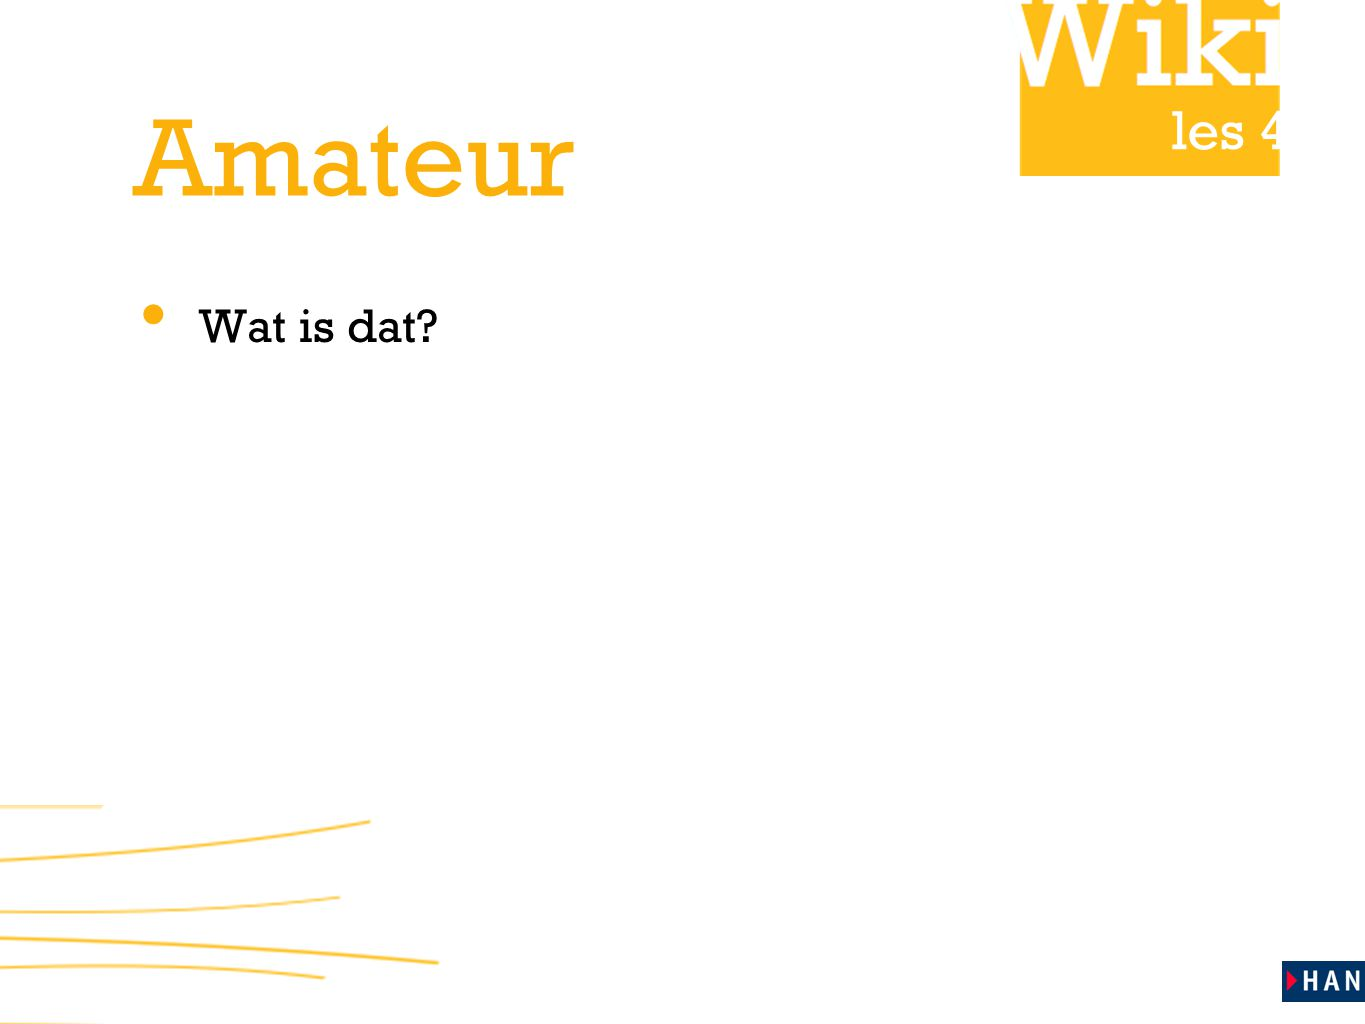 les 4 Amateur Wat is dat